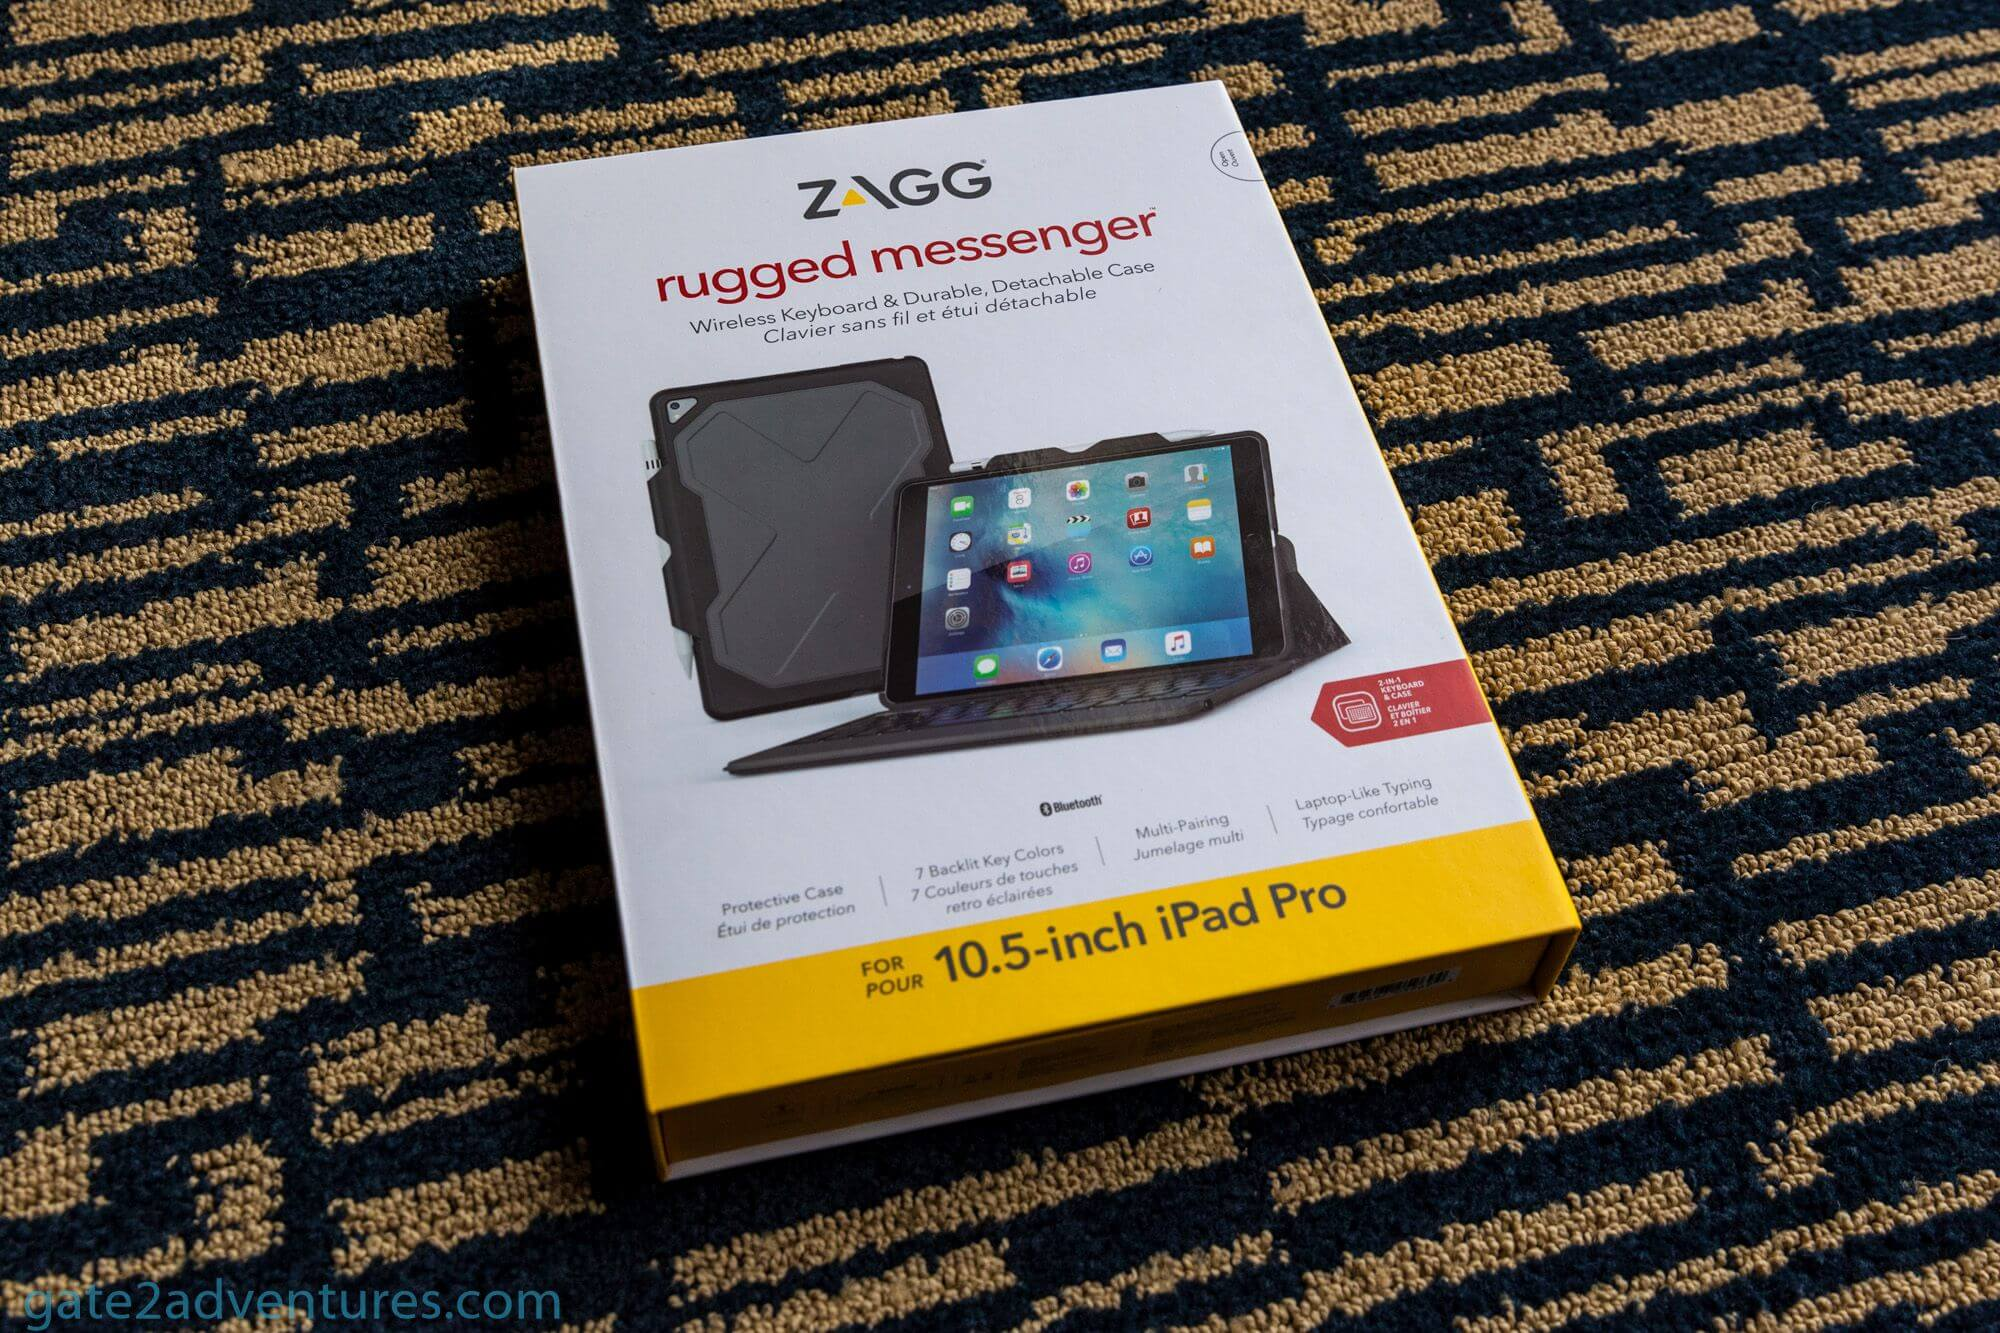 Travel Gadget Review: Zagg Rugged Messenger for the Apple iPad Pro 10.5-inch